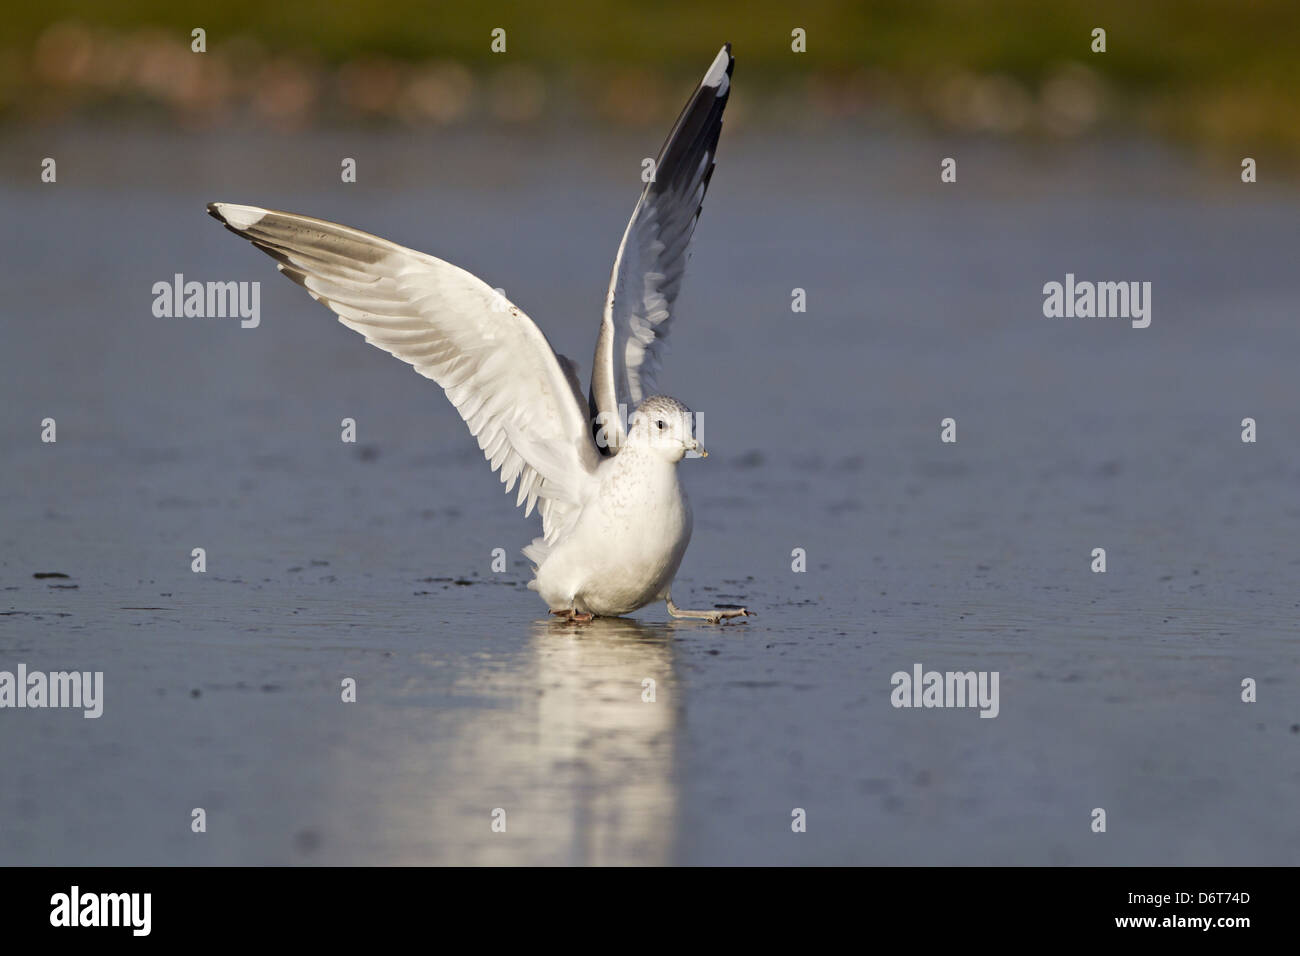 Common Gull (Larus canus) immature, second winter plumage, slipping on ice of frozen pond, Suffolk, England, December - Stock Image